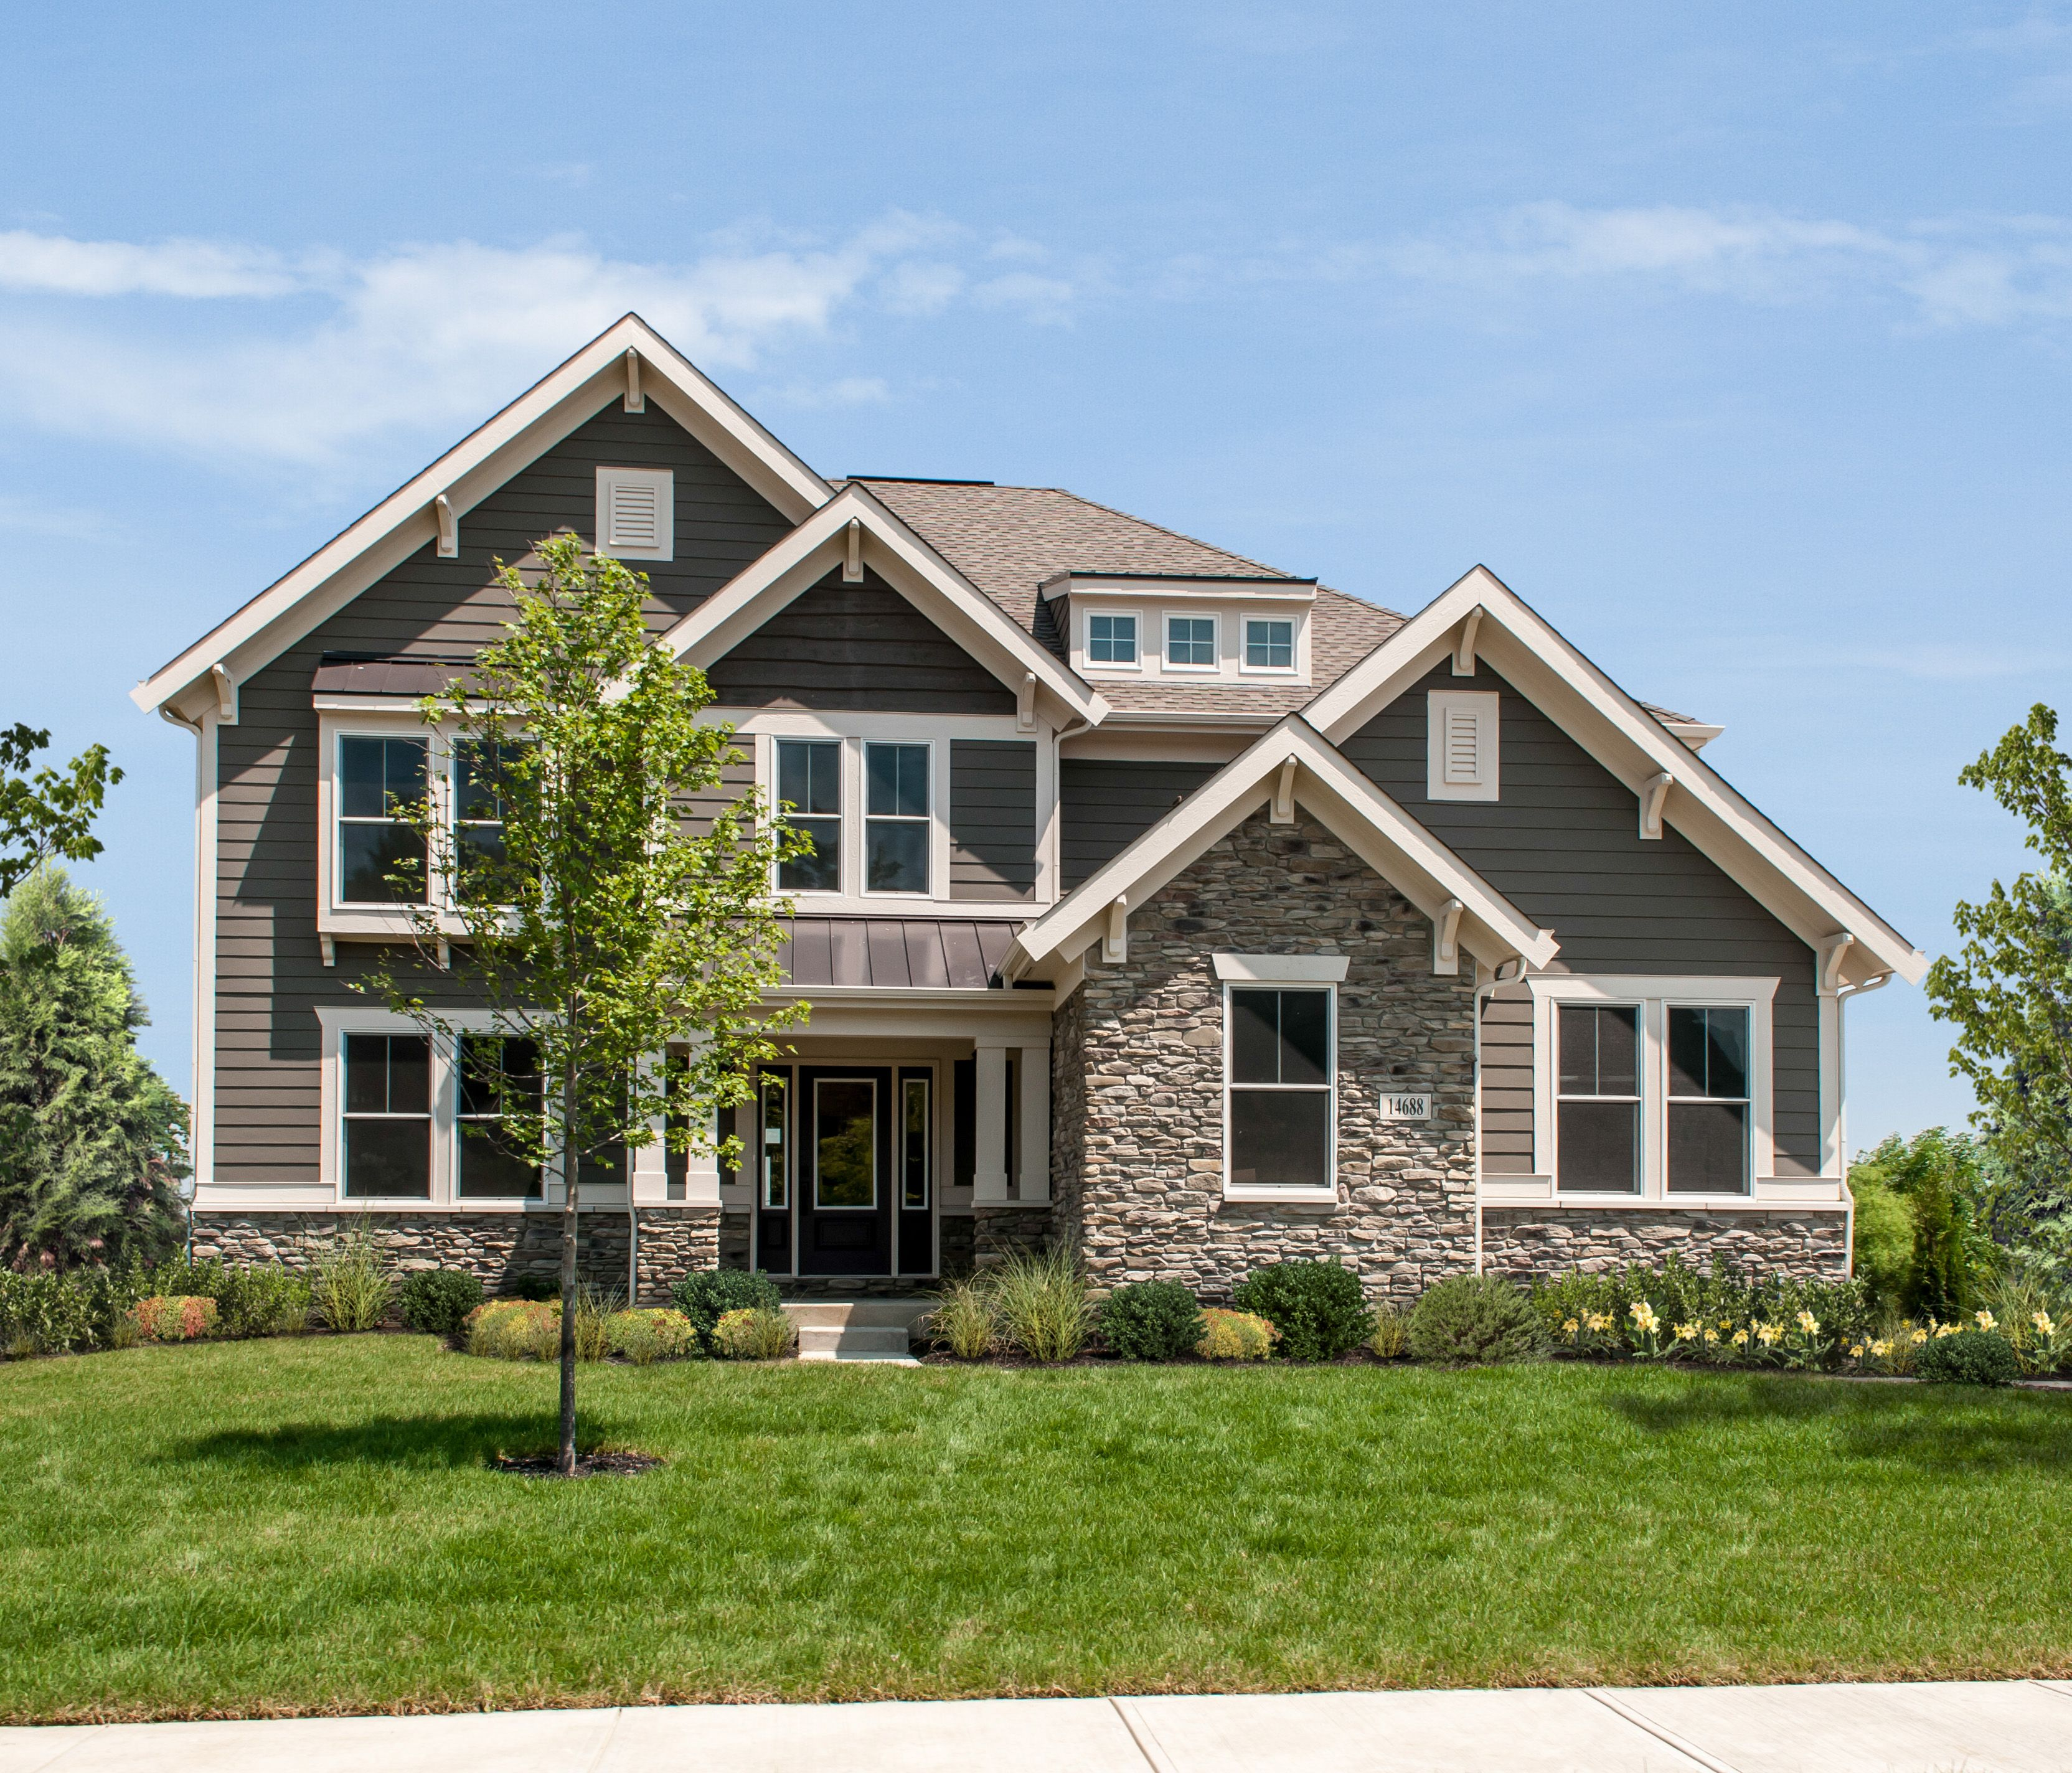 Fischer homes marshall western craftsman design - What is a craftsman style home ...